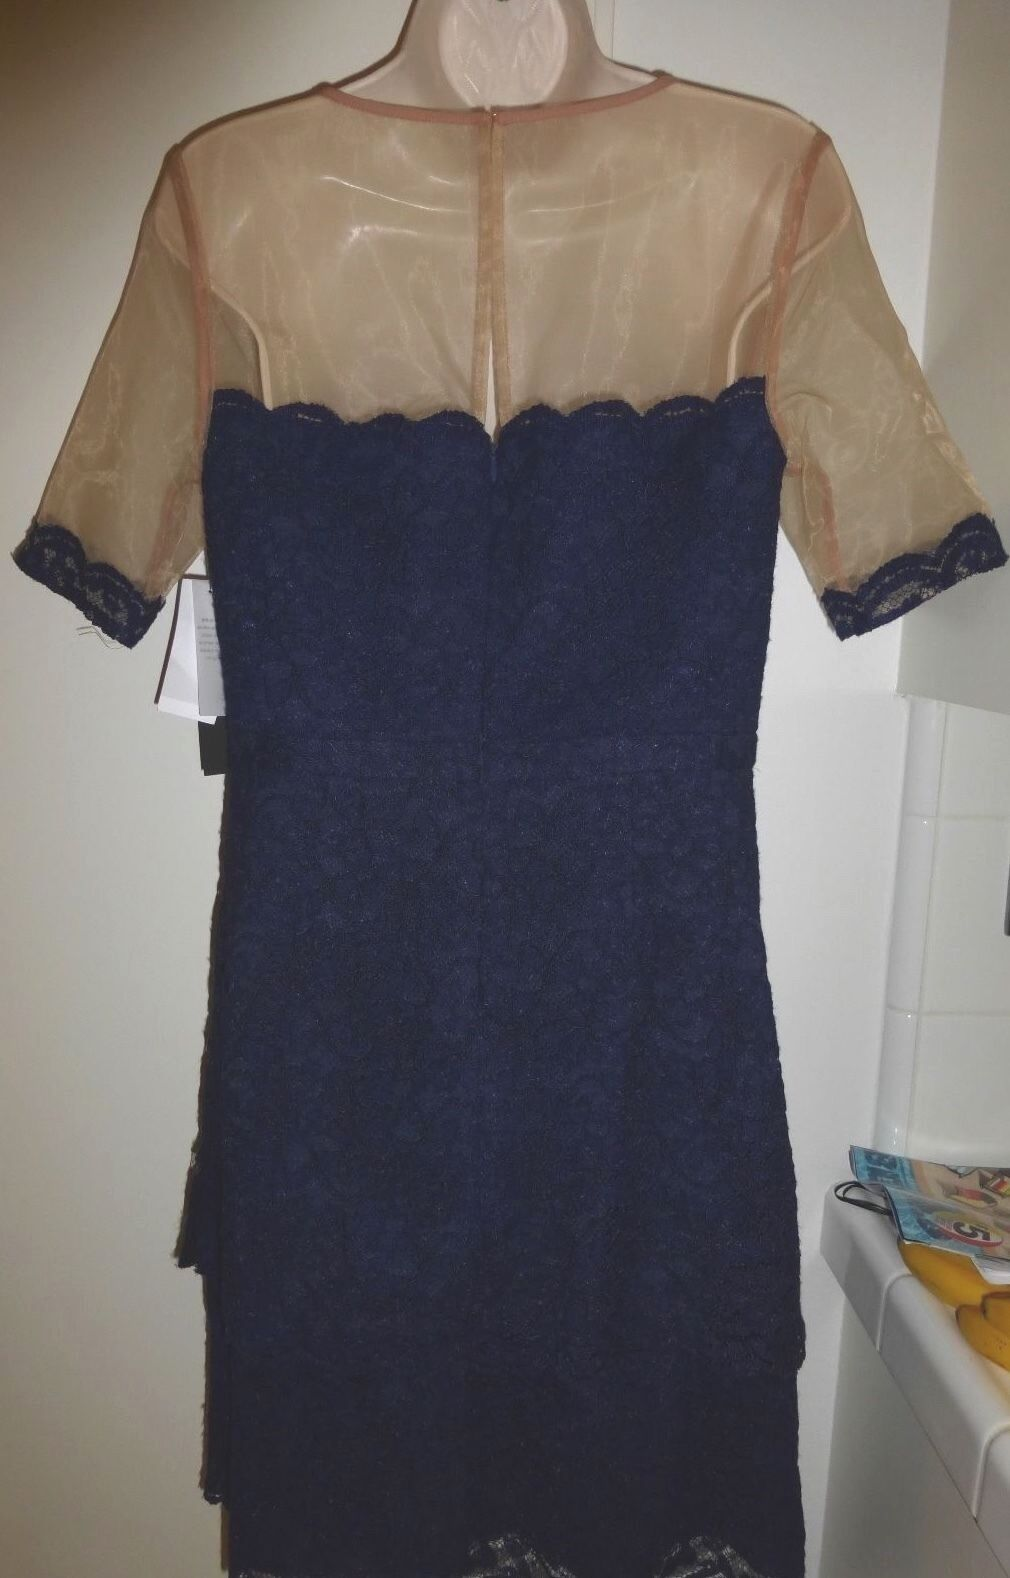 Cynthia Steffe Steffe Steffe Deep Indigo Lace Nude sheer top Dress Size 8  278 NWT 43915a